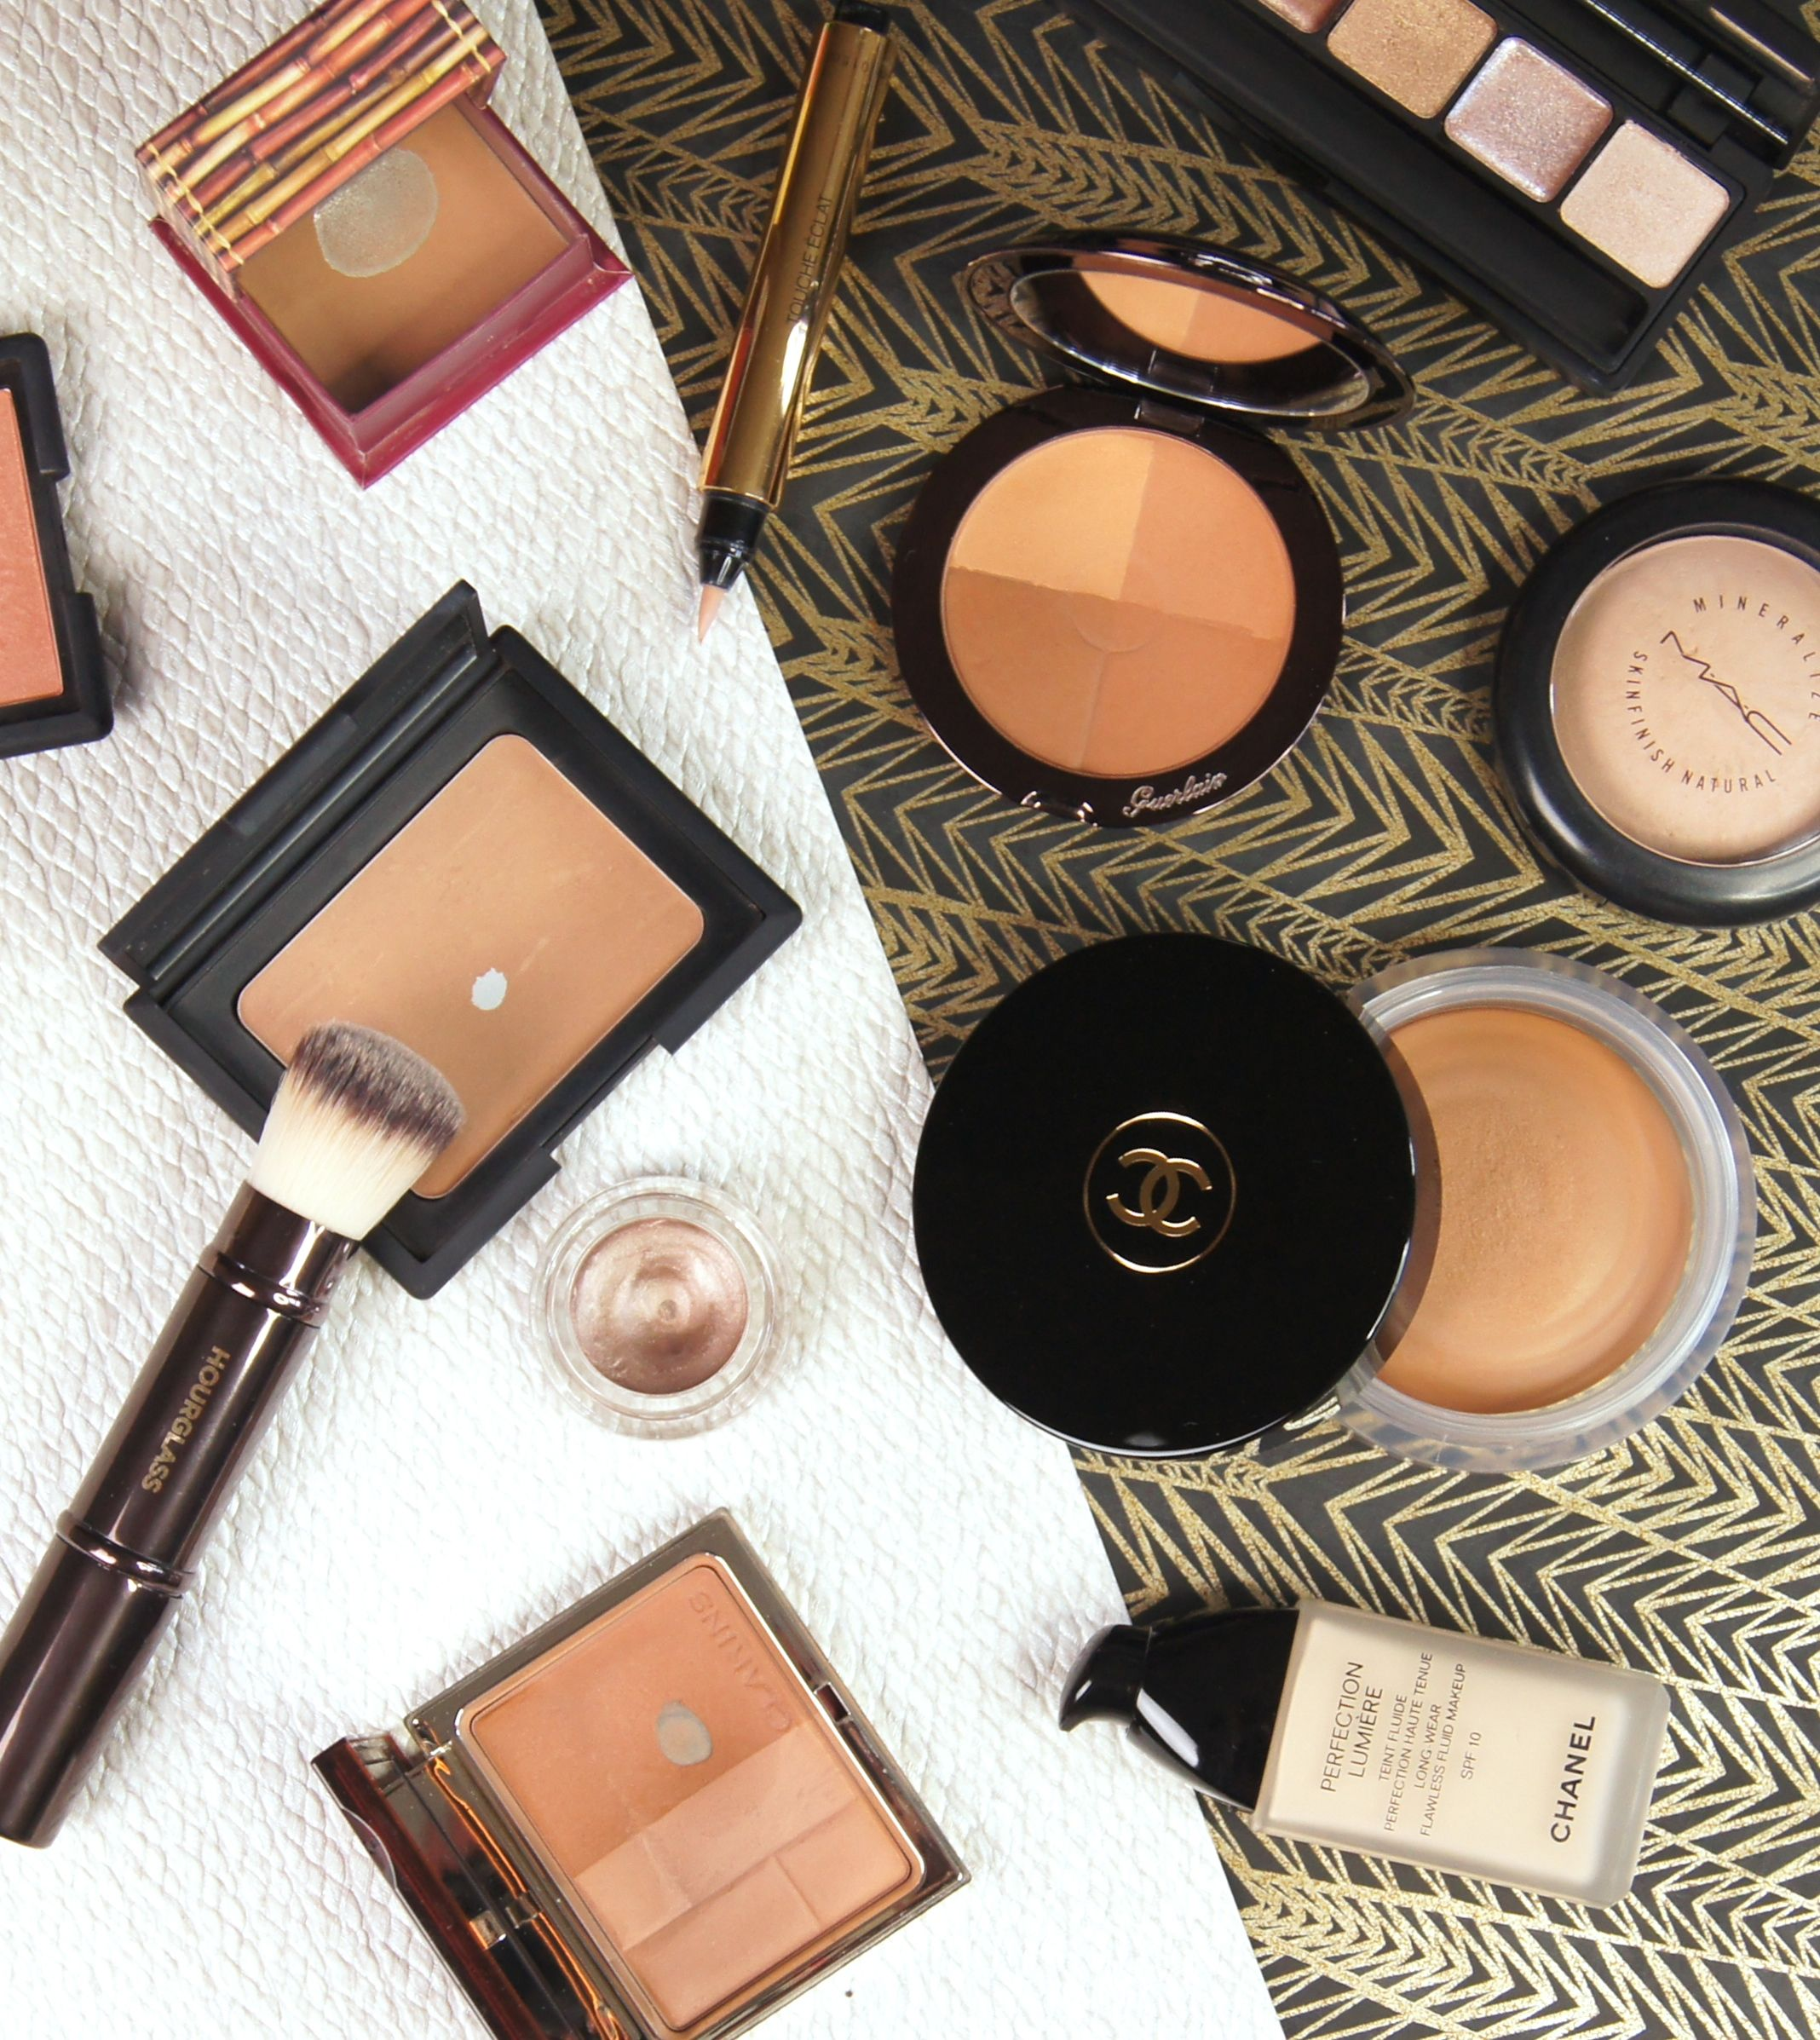 The best bronzers for a gorgeous, golden glow, featuring Benefit Hoola, Chanel Soleil Tan De Chanel, Clarins Bronzing Duo, Nars Laguna and Guerlain Terracotta 4 Seasons.